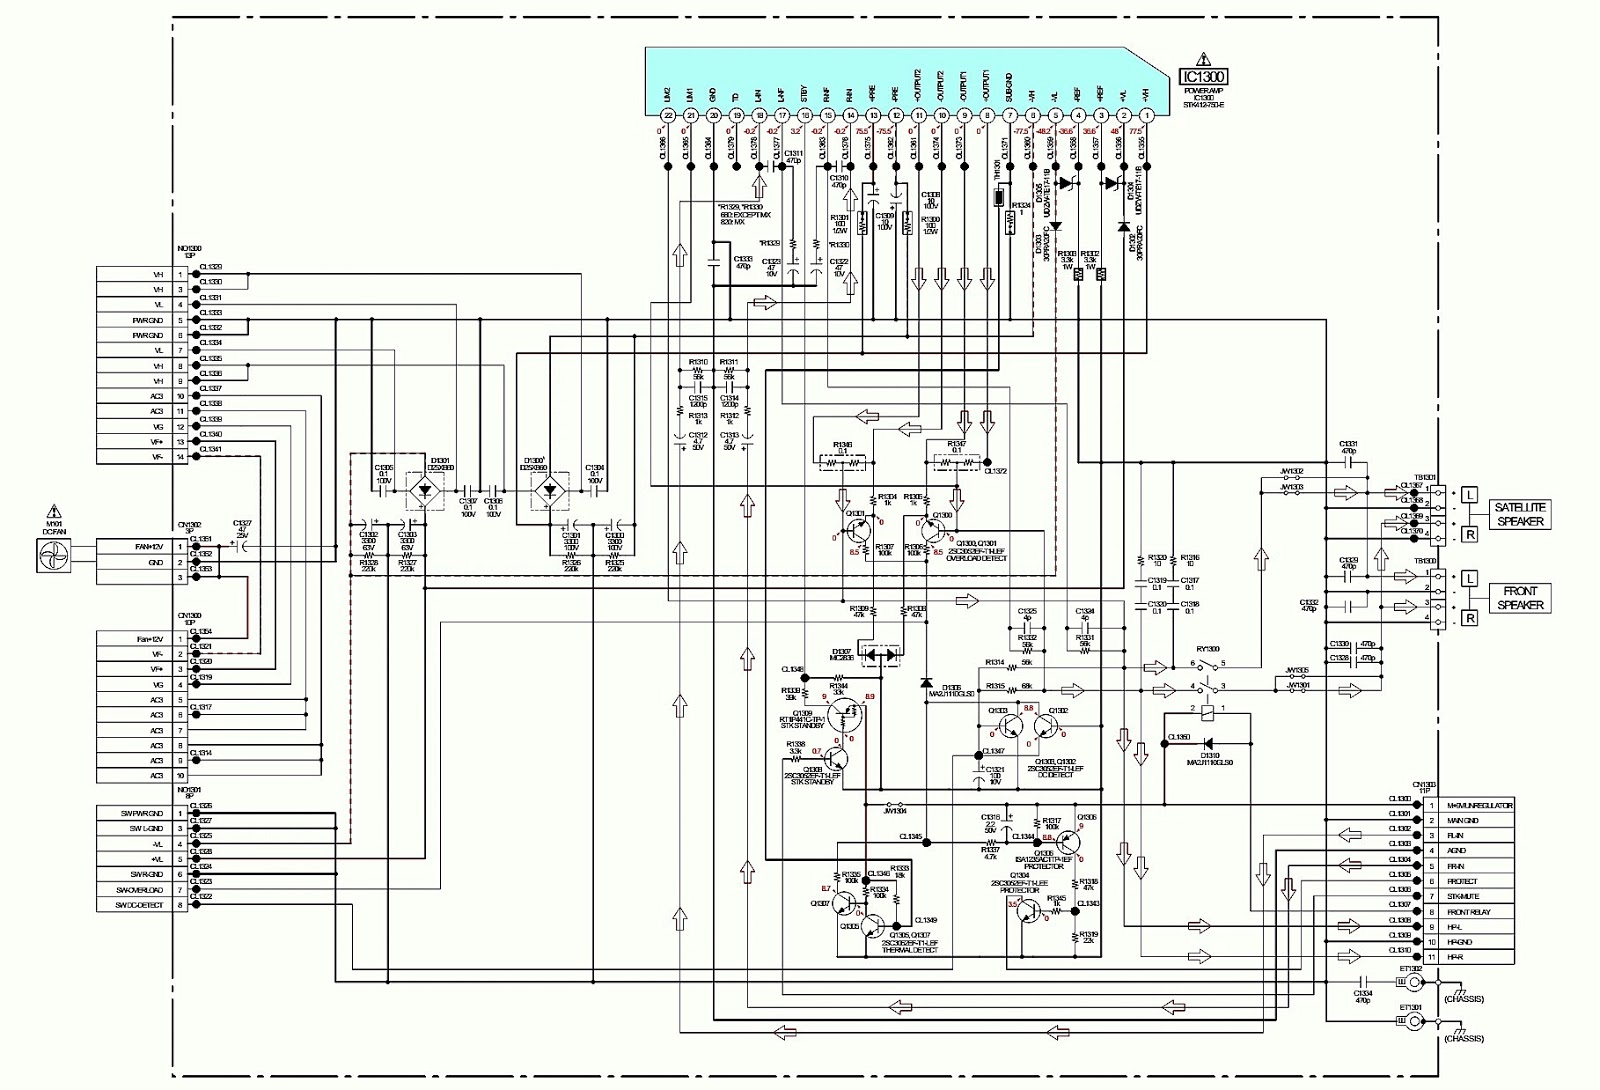 Sony Hcd Gtr88 Power Amplifier Circuit Diagram Stk412 750